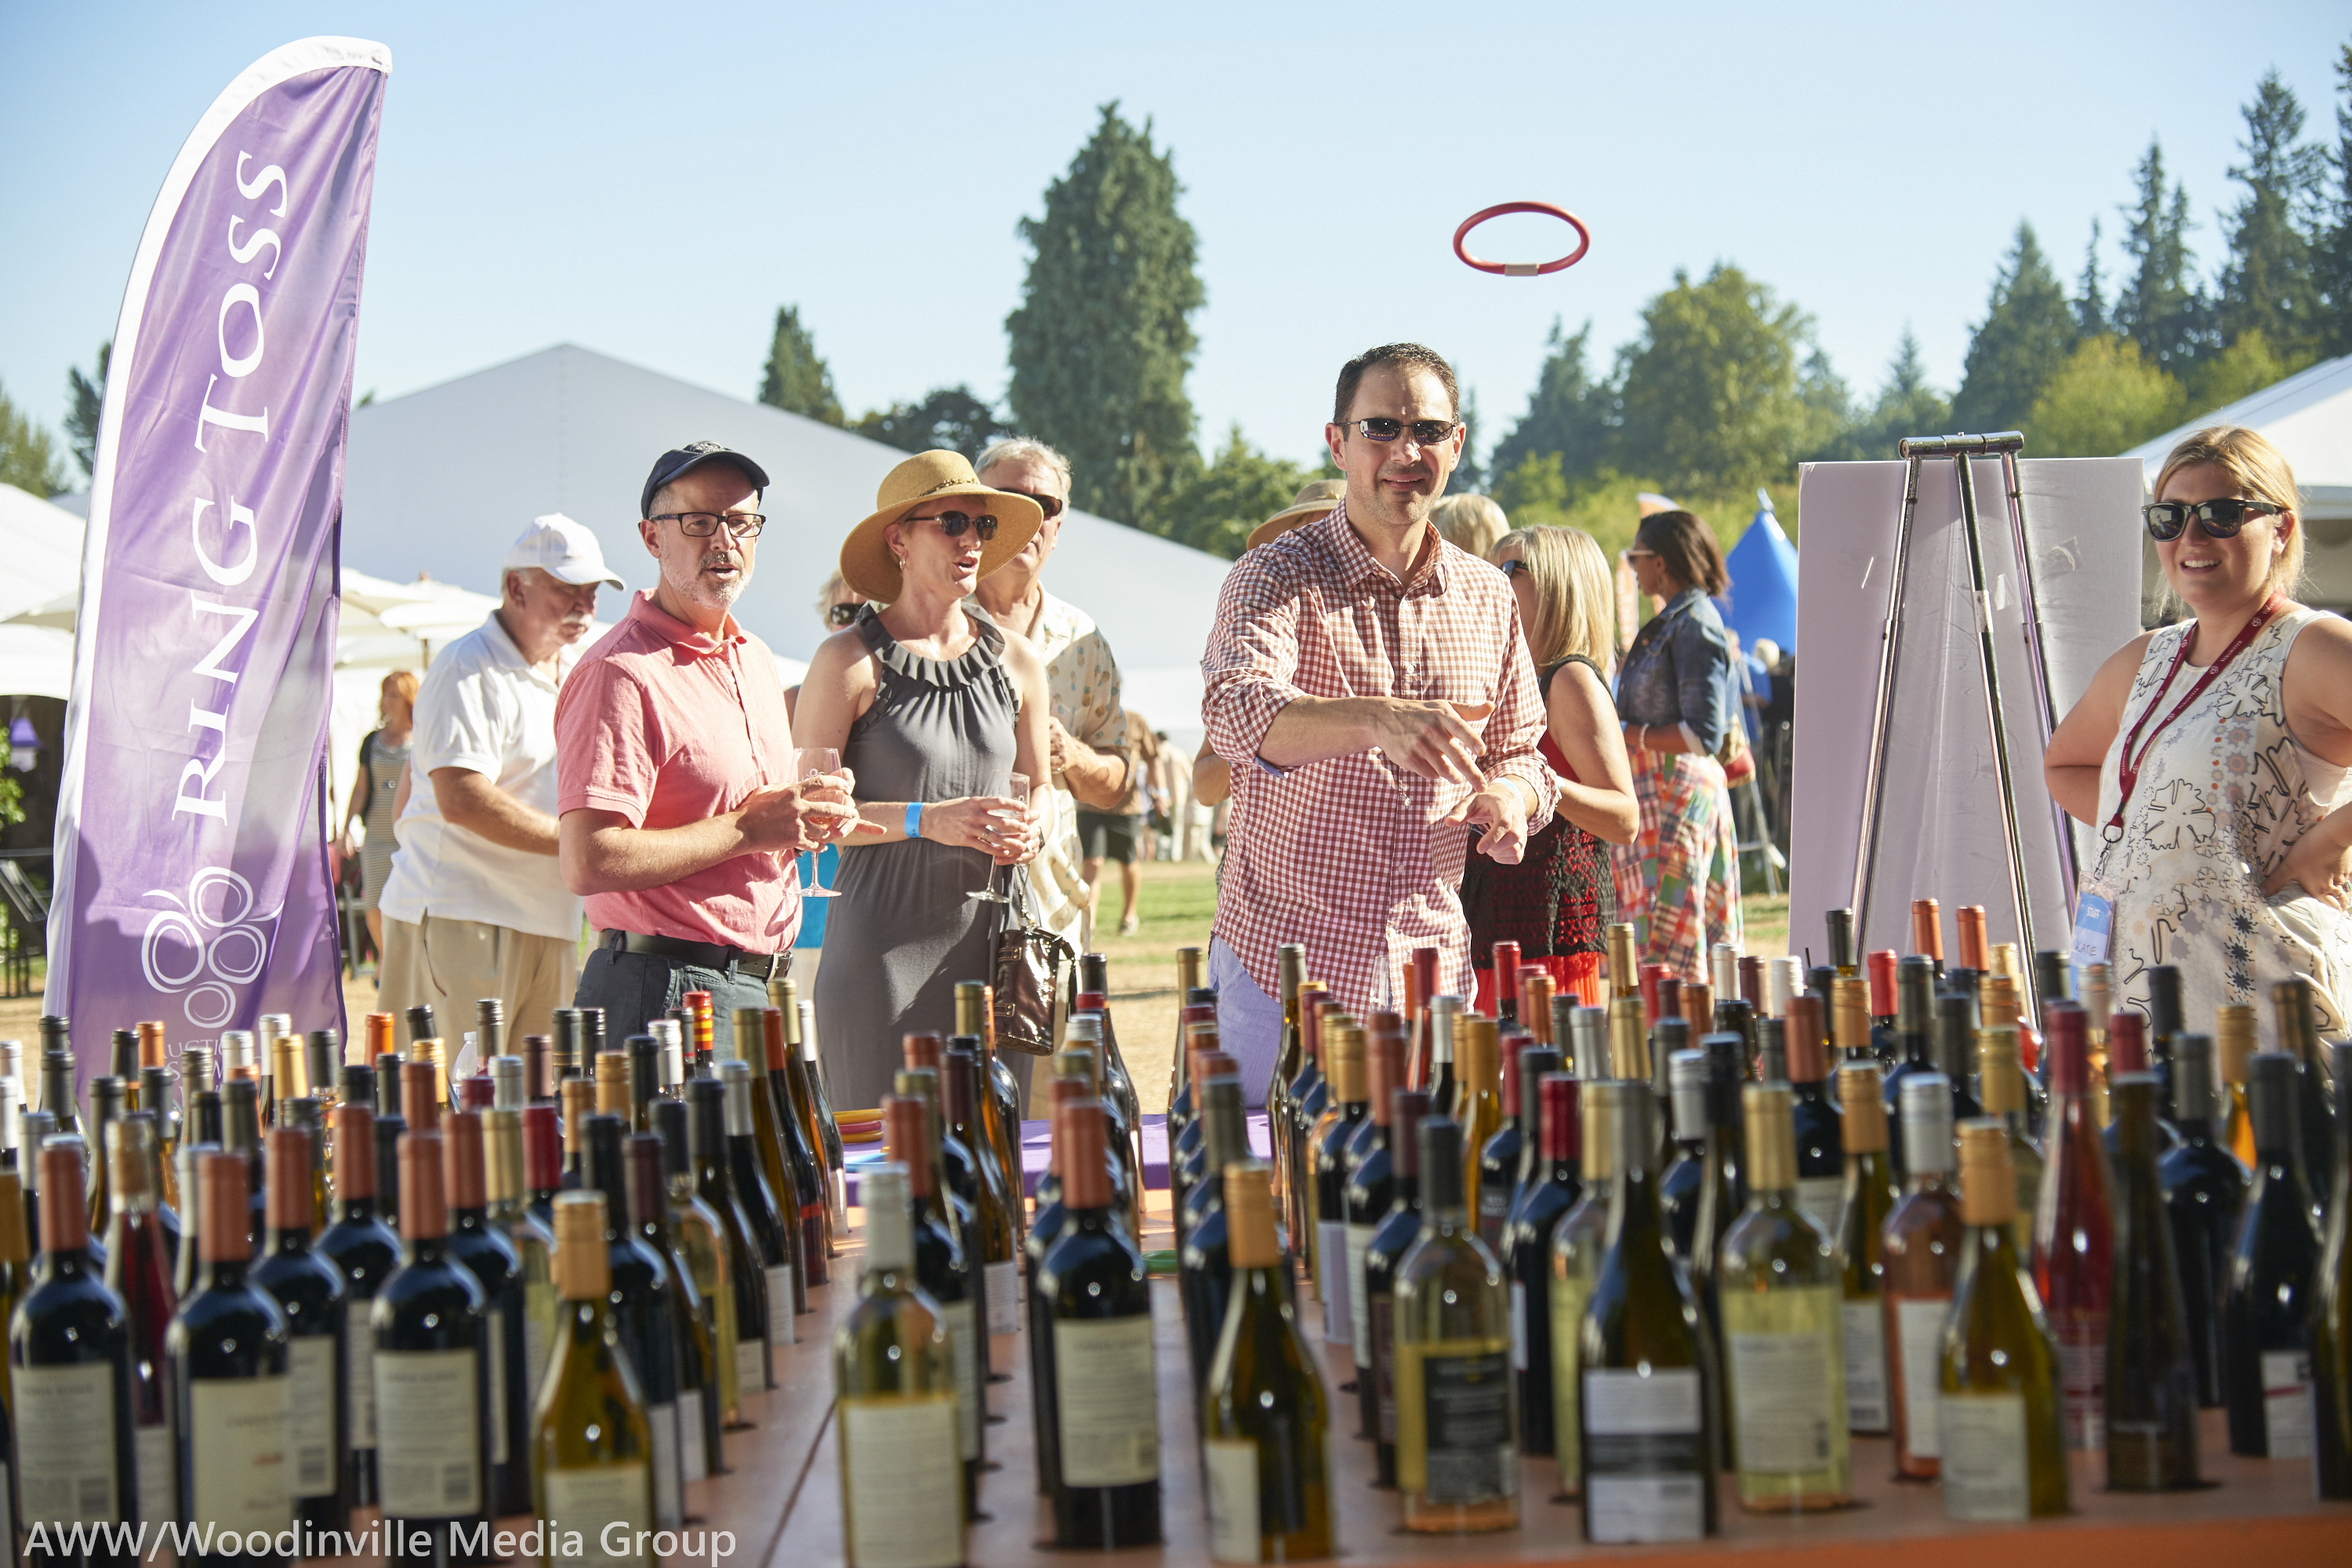 JB 08 18 16 8840 - Winemaker Picnic & Barrel Auction